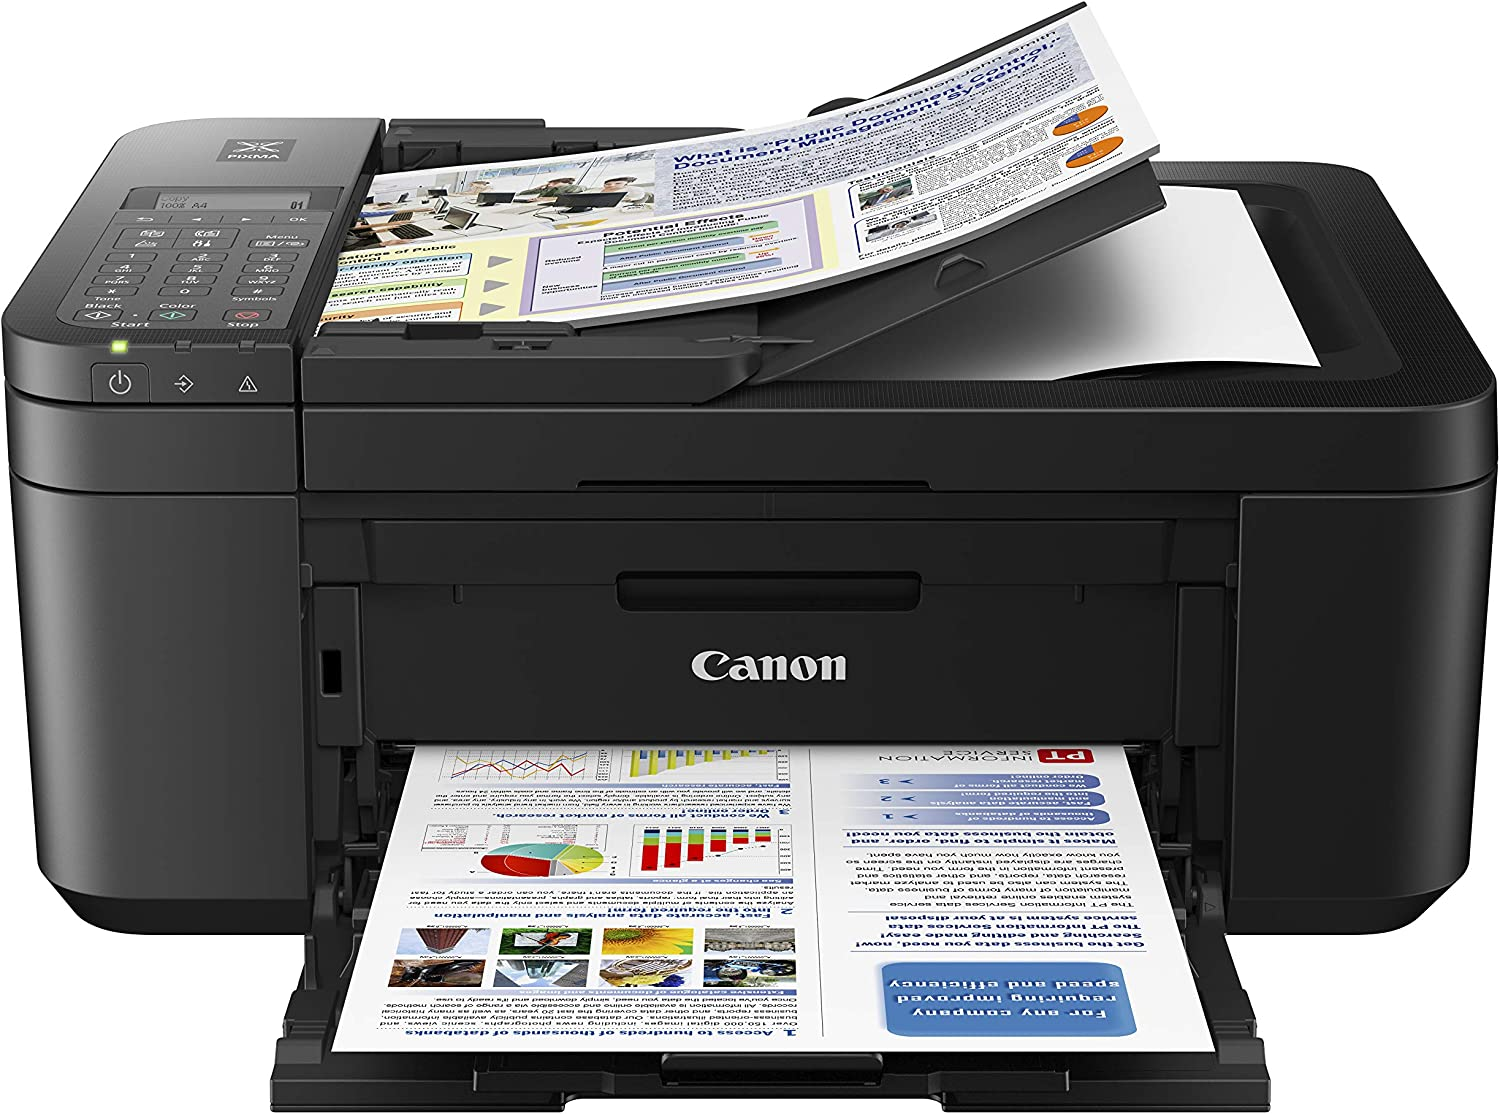 Amazon.com: Canon PIXMA TR4520 Wireless All in One Photo Printer with Mobile Printing, Black, Works with Alexa : Office Products